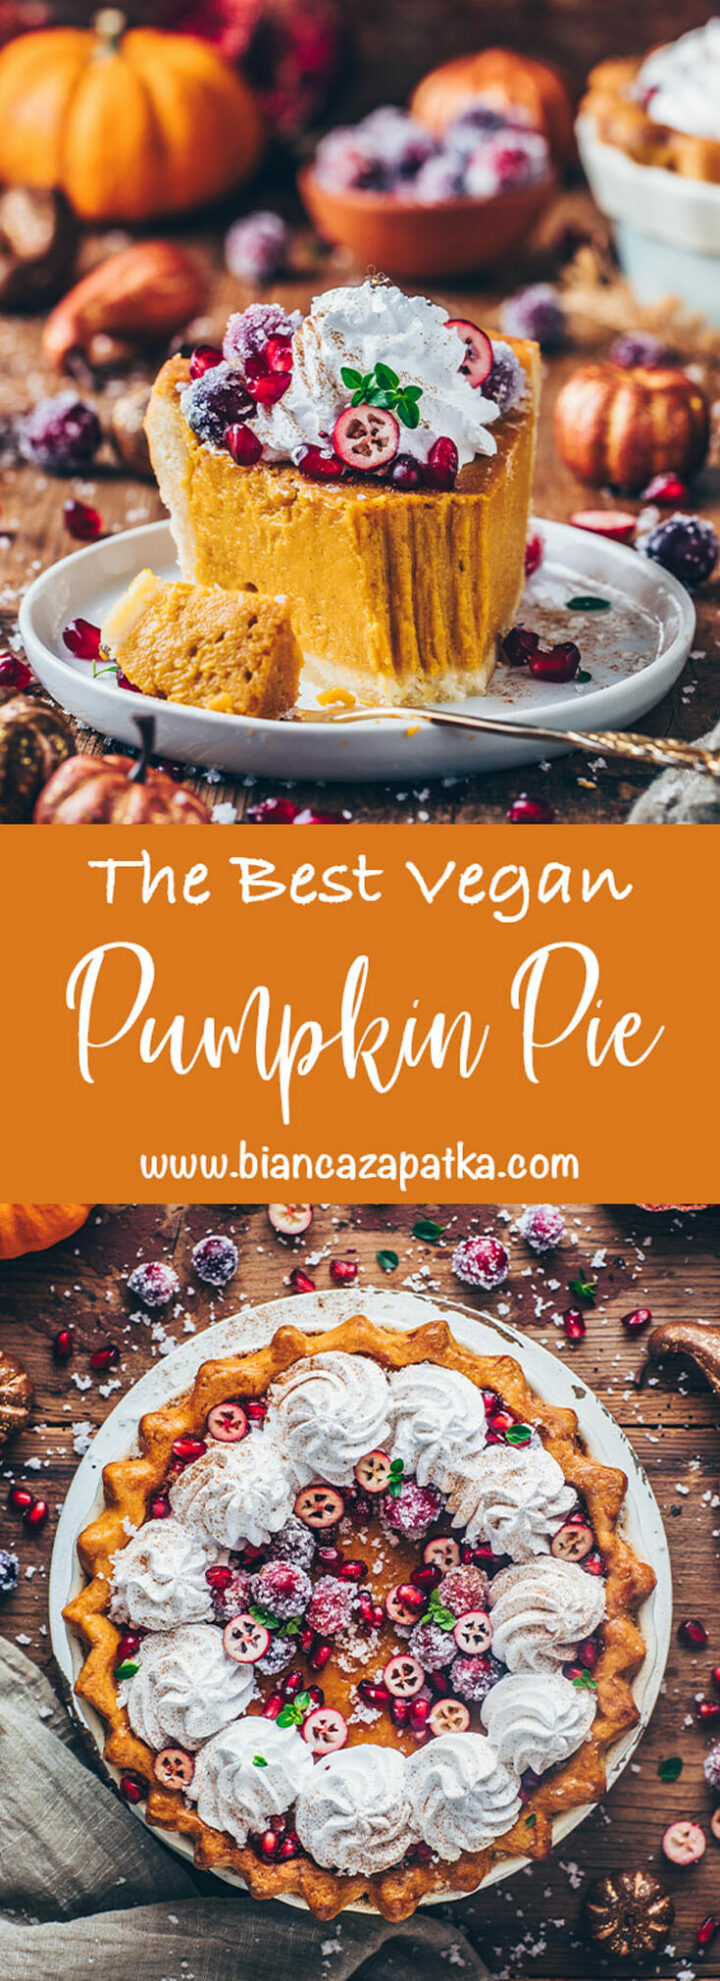 Best Vegan Pumpkin Pie with Sugared Cranberries